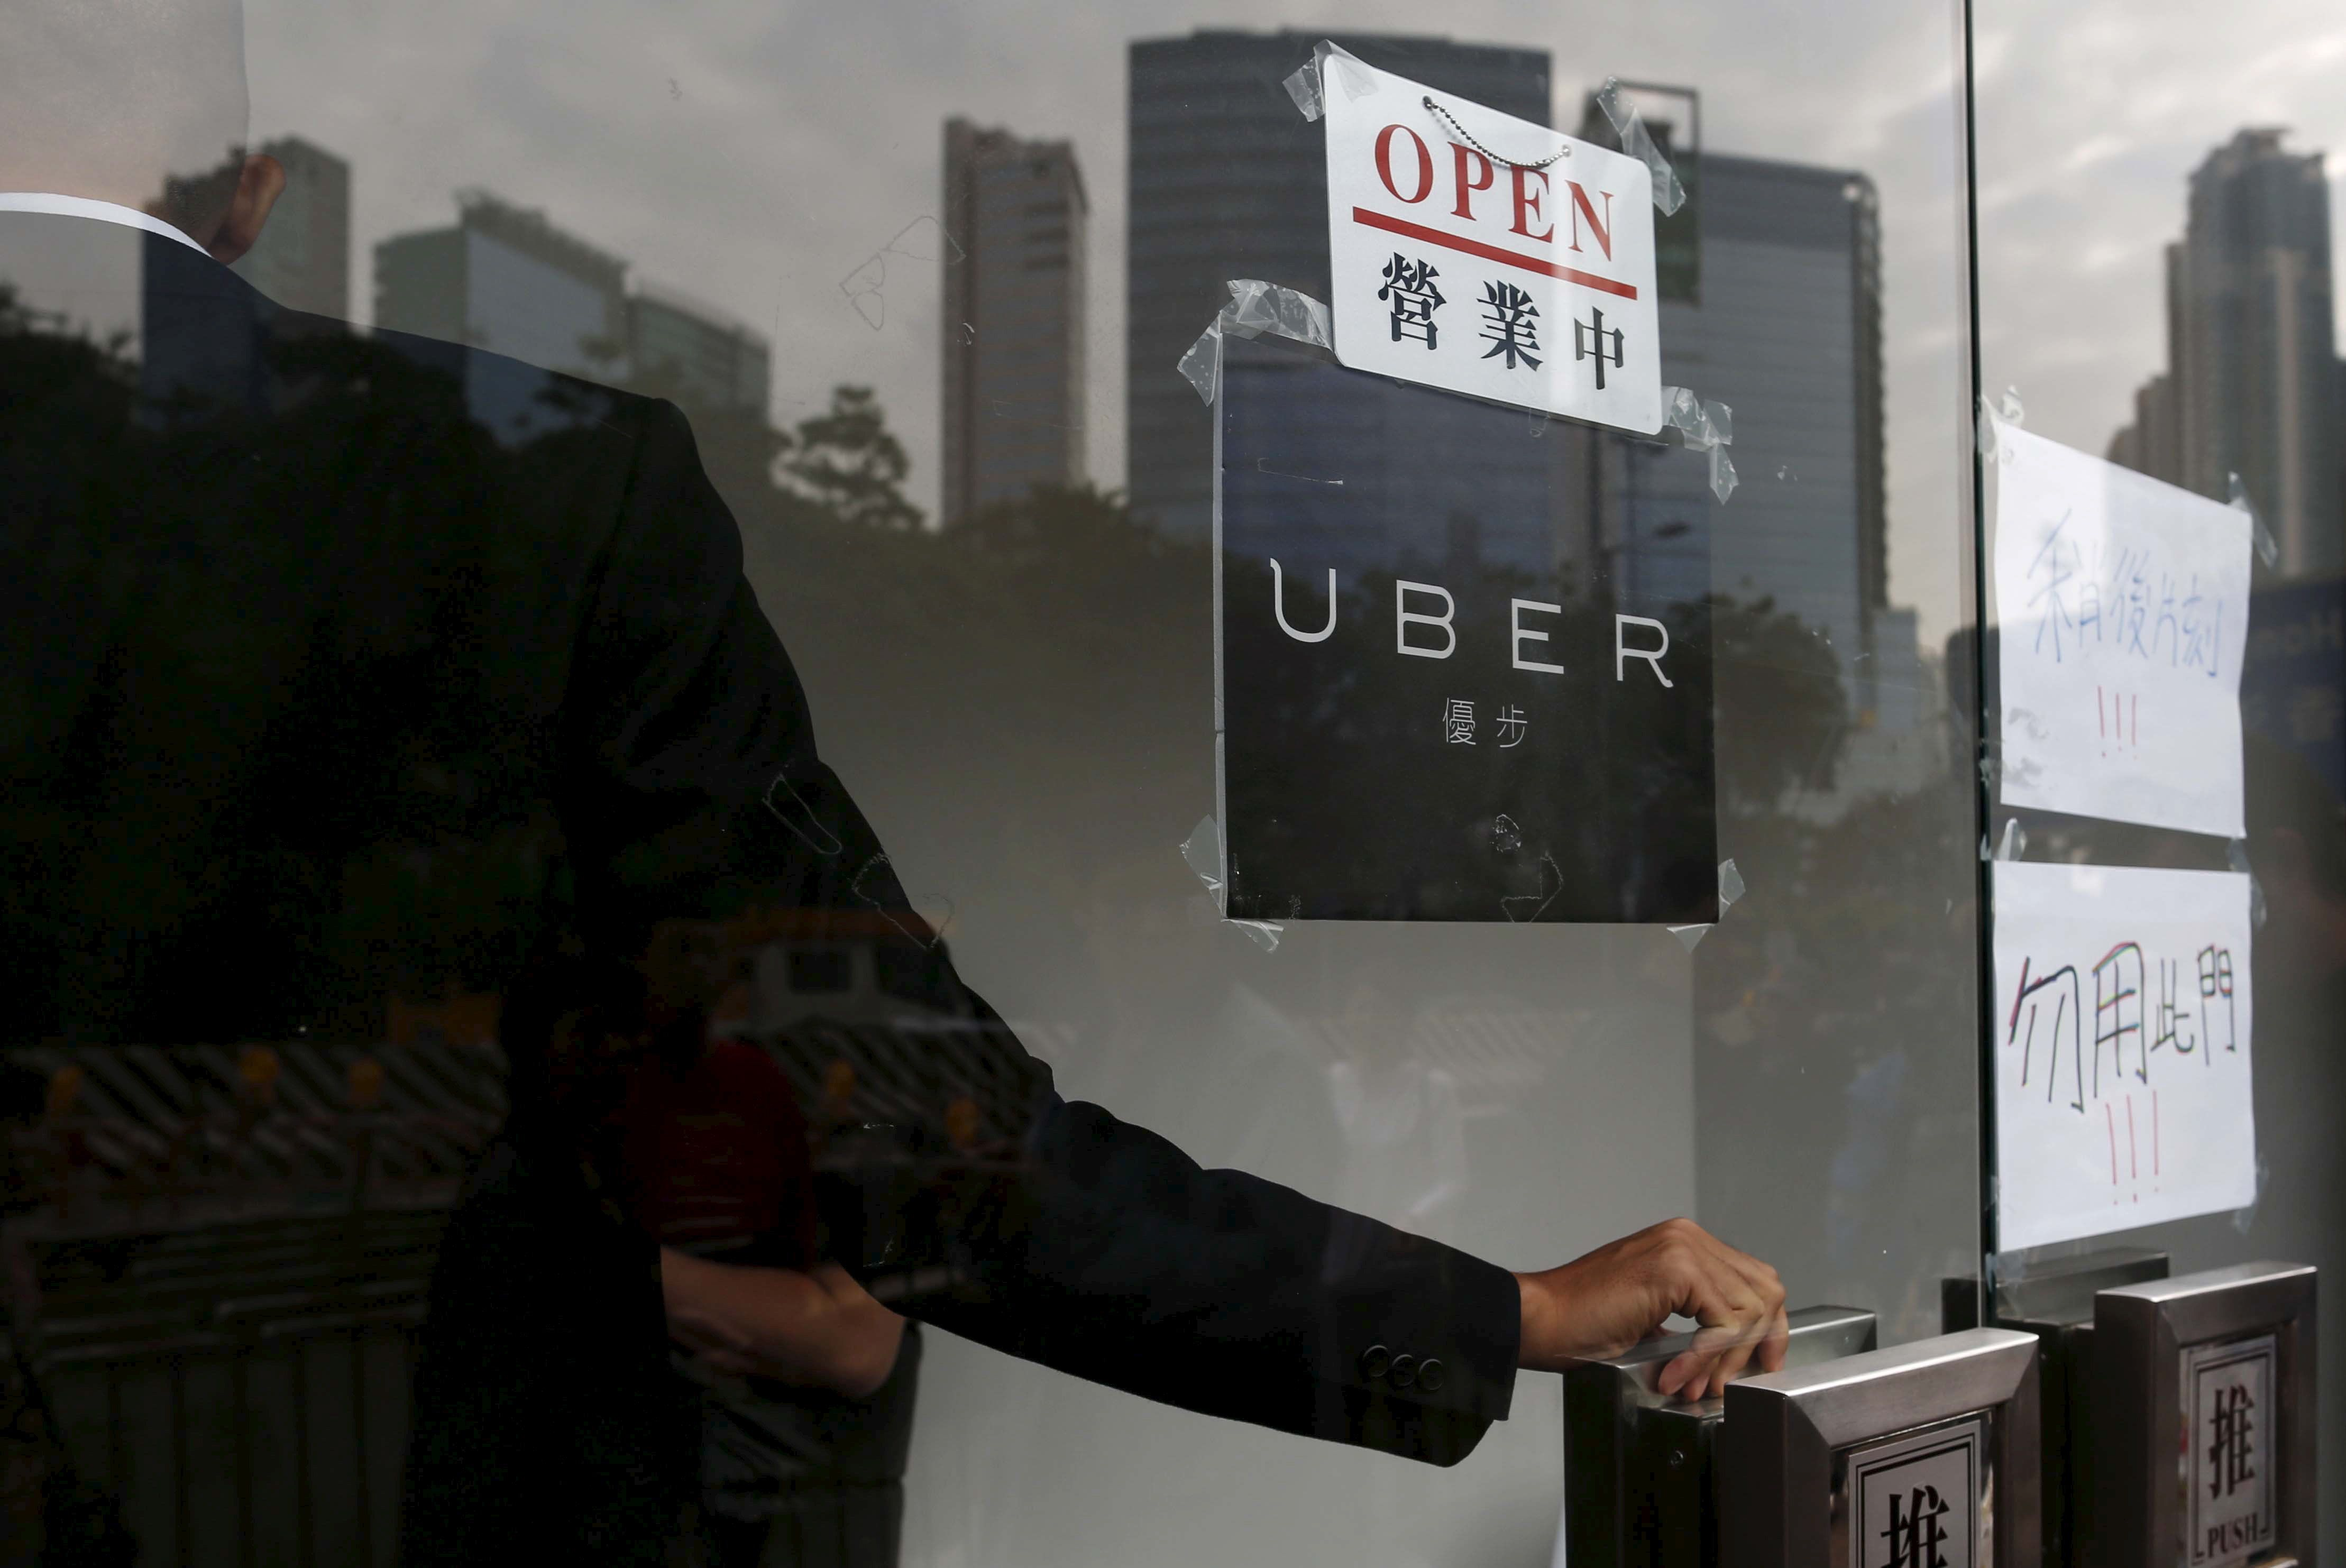 An open sign is seen at the office of Uber Inc during a driver recruitment event in Hong Kong, China December 29, 2015.